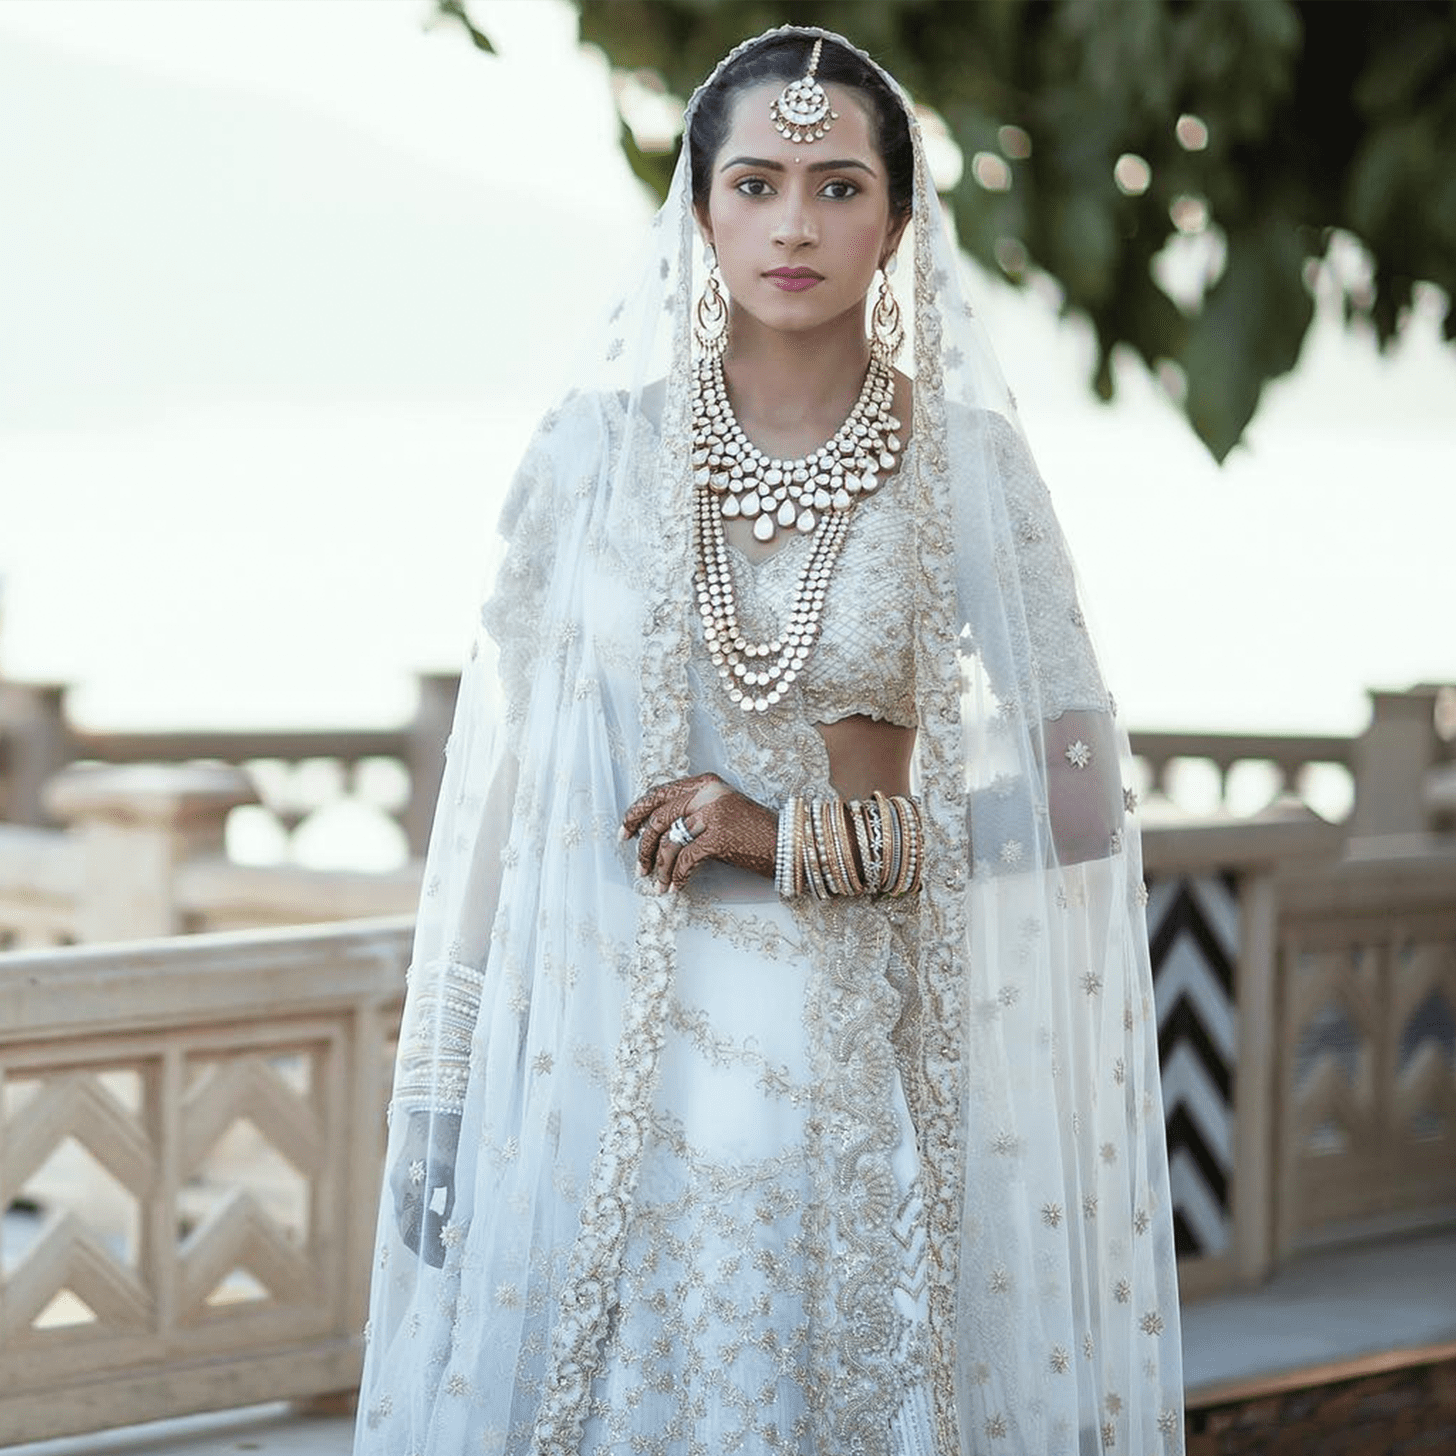 White Indian Wedding Dresses 12 Good A Bride Embroidered Her